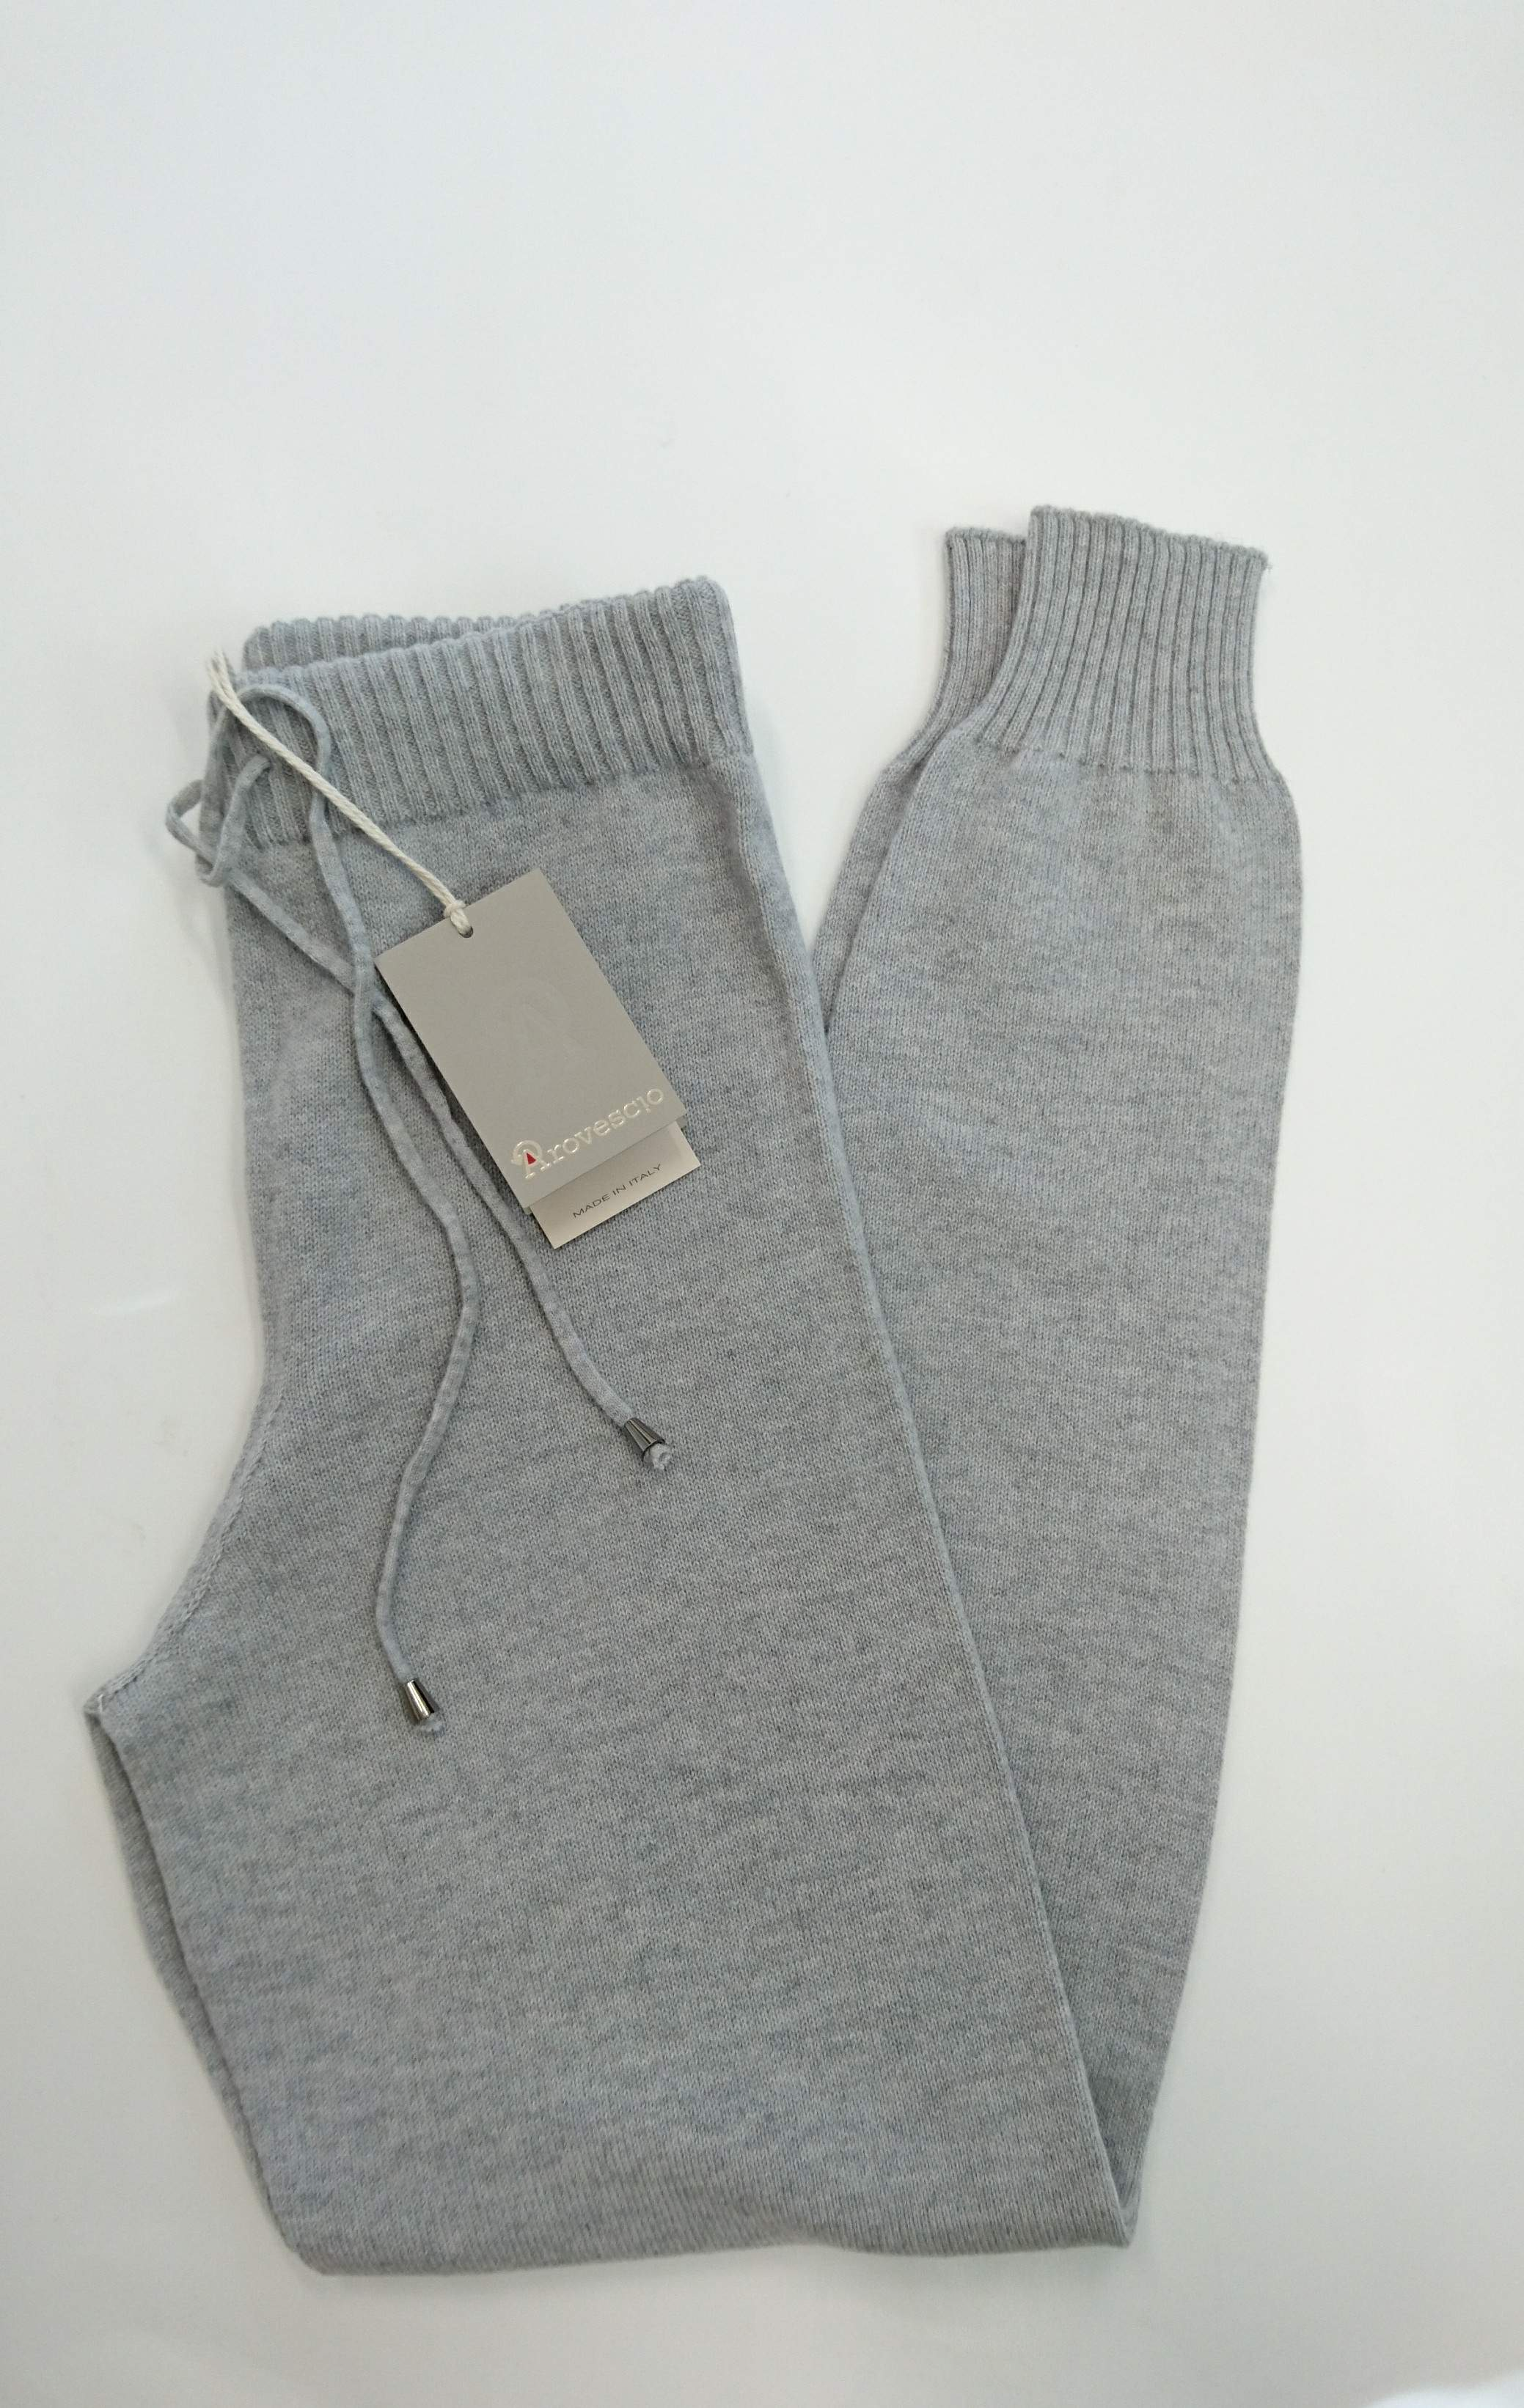 ALE - AROVESCIO Knitted Pants Light Grey